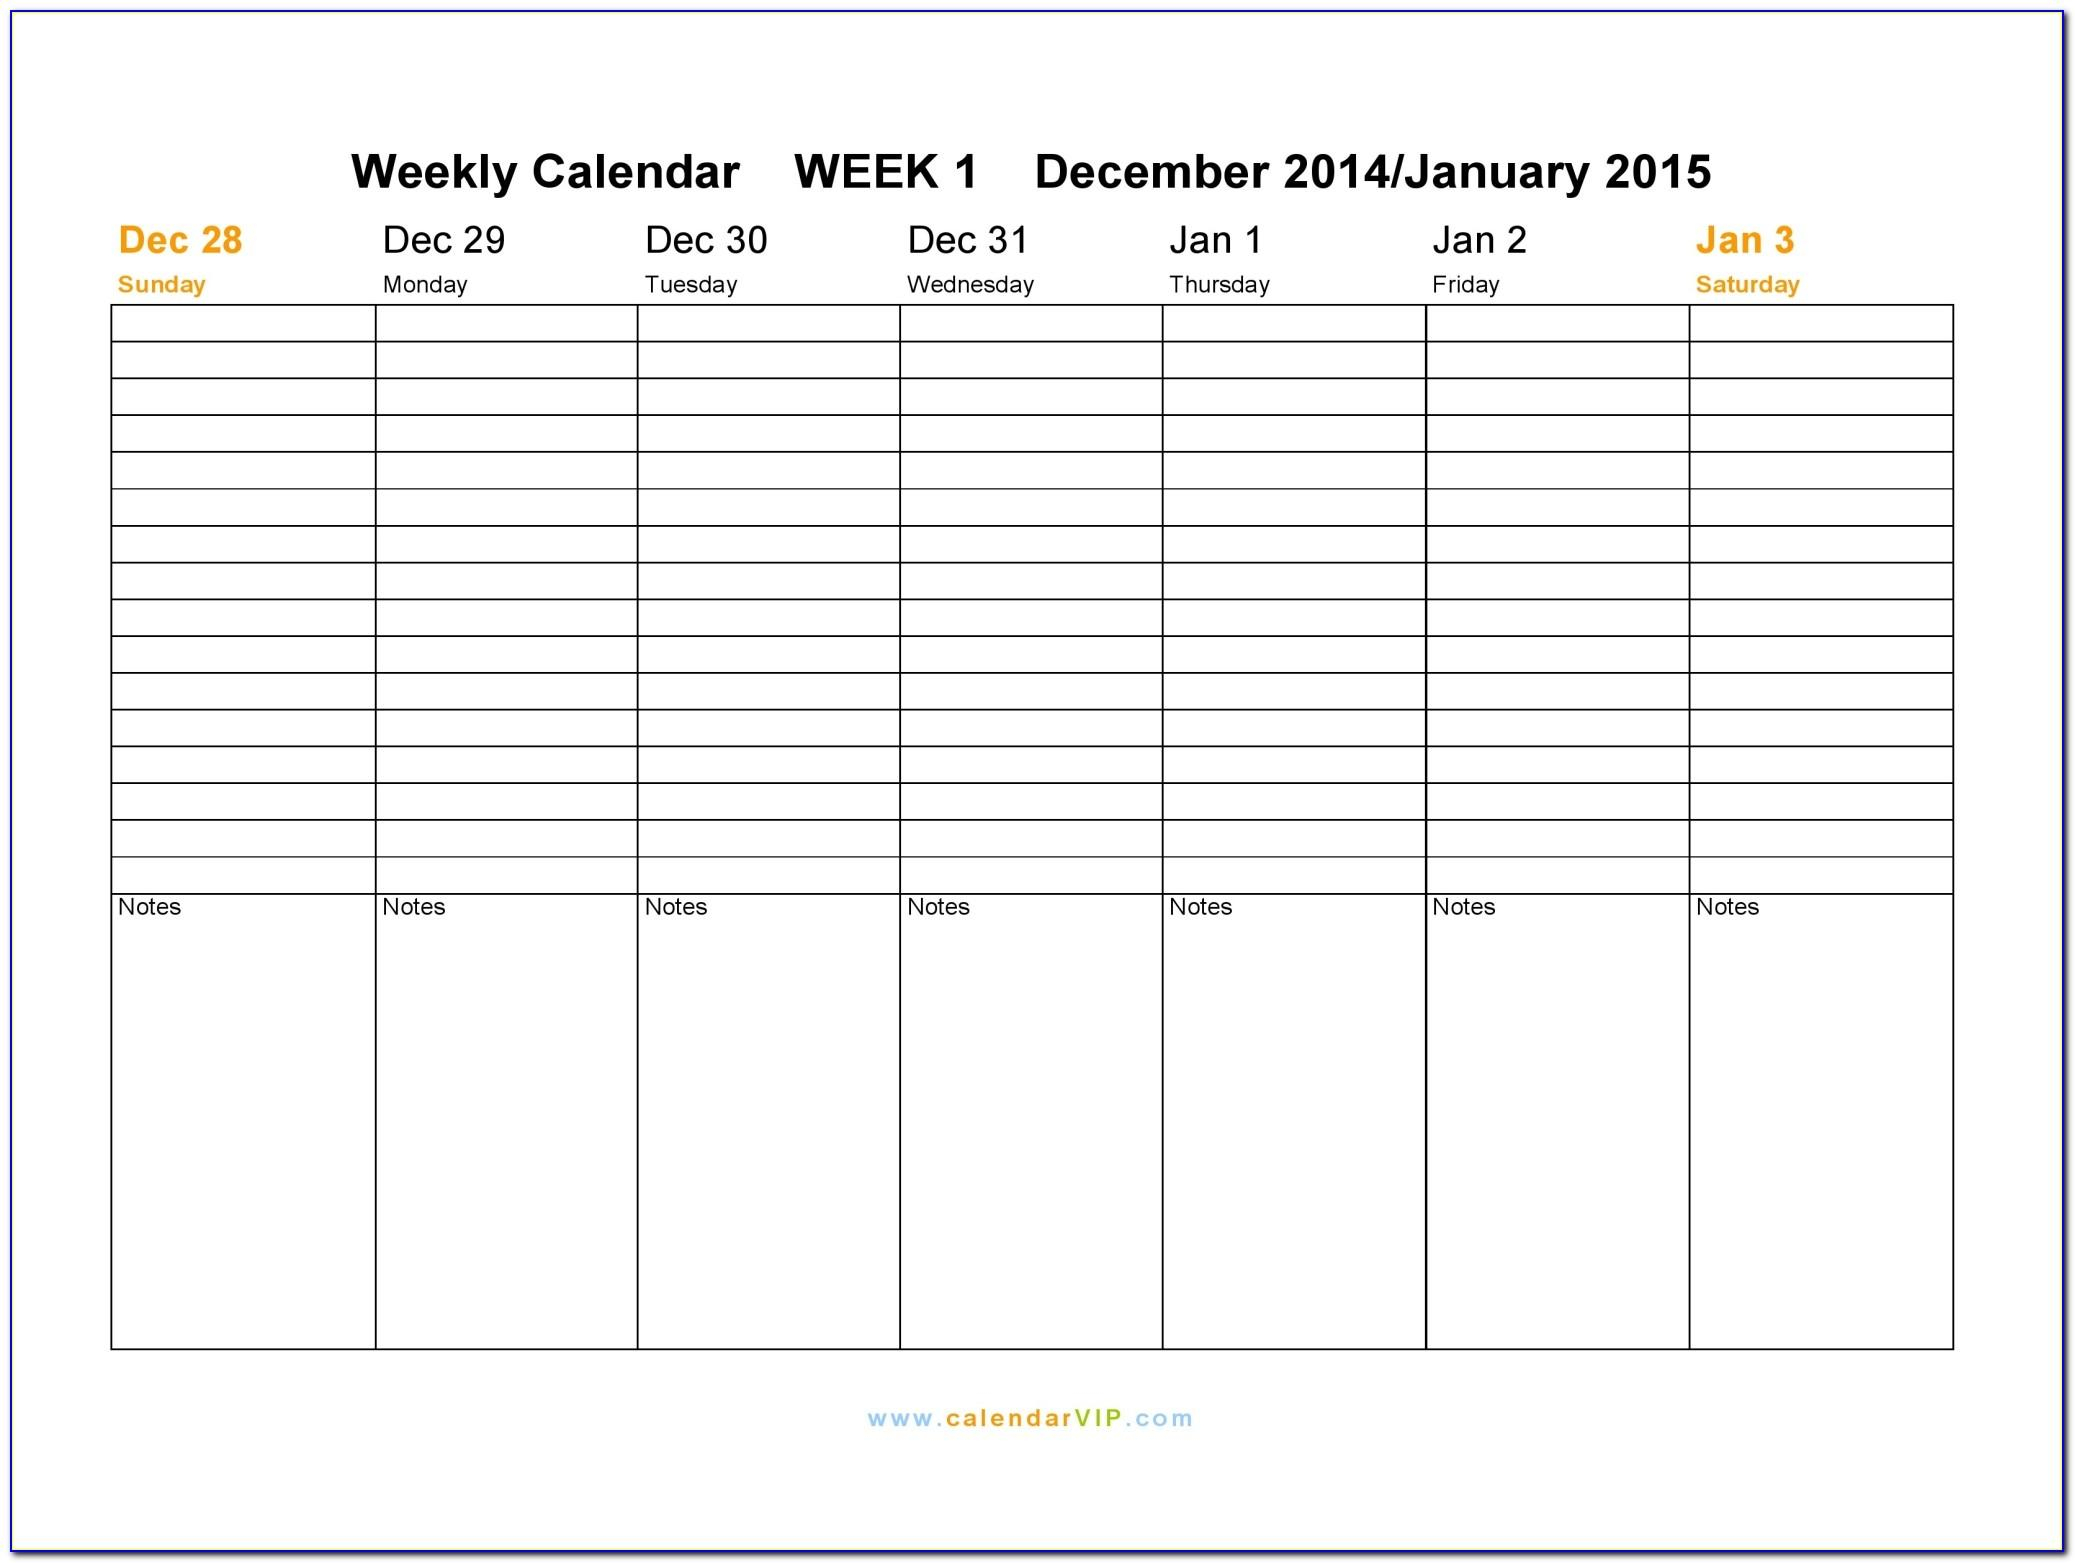 Weekly Schedule Excel Spreadsheet Template